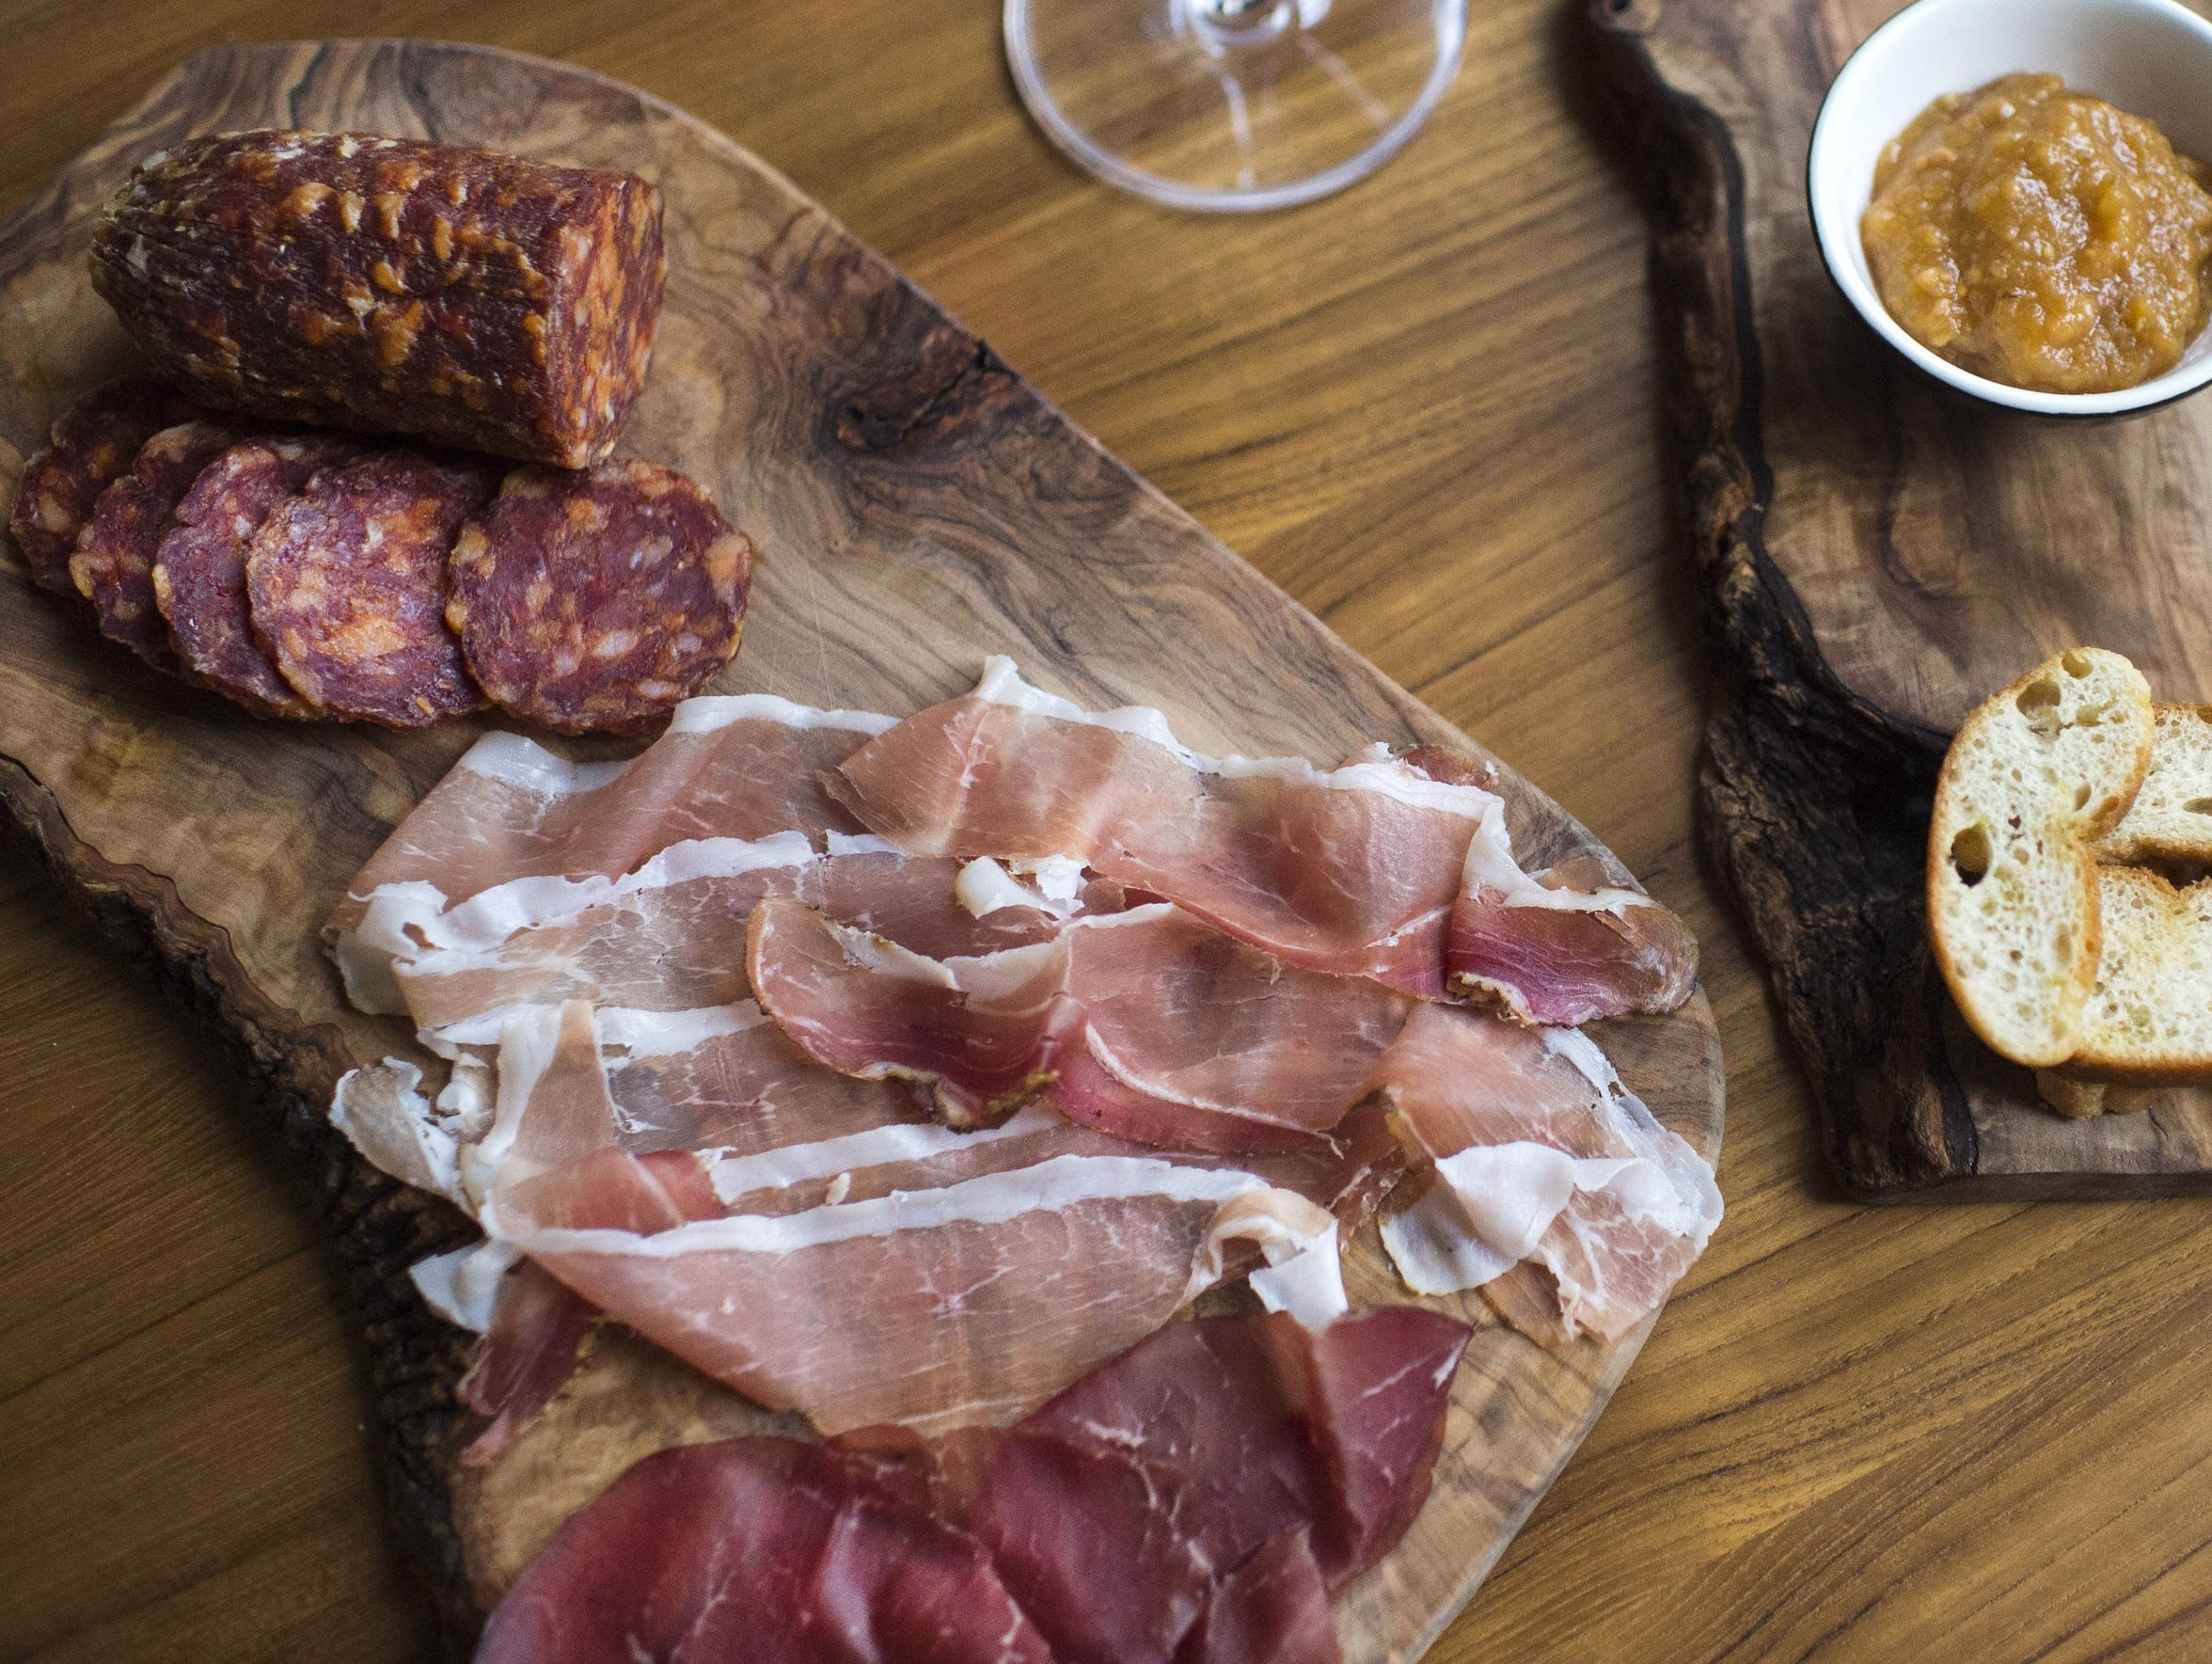 Cheese and charcuterie from Jockey Hollow.